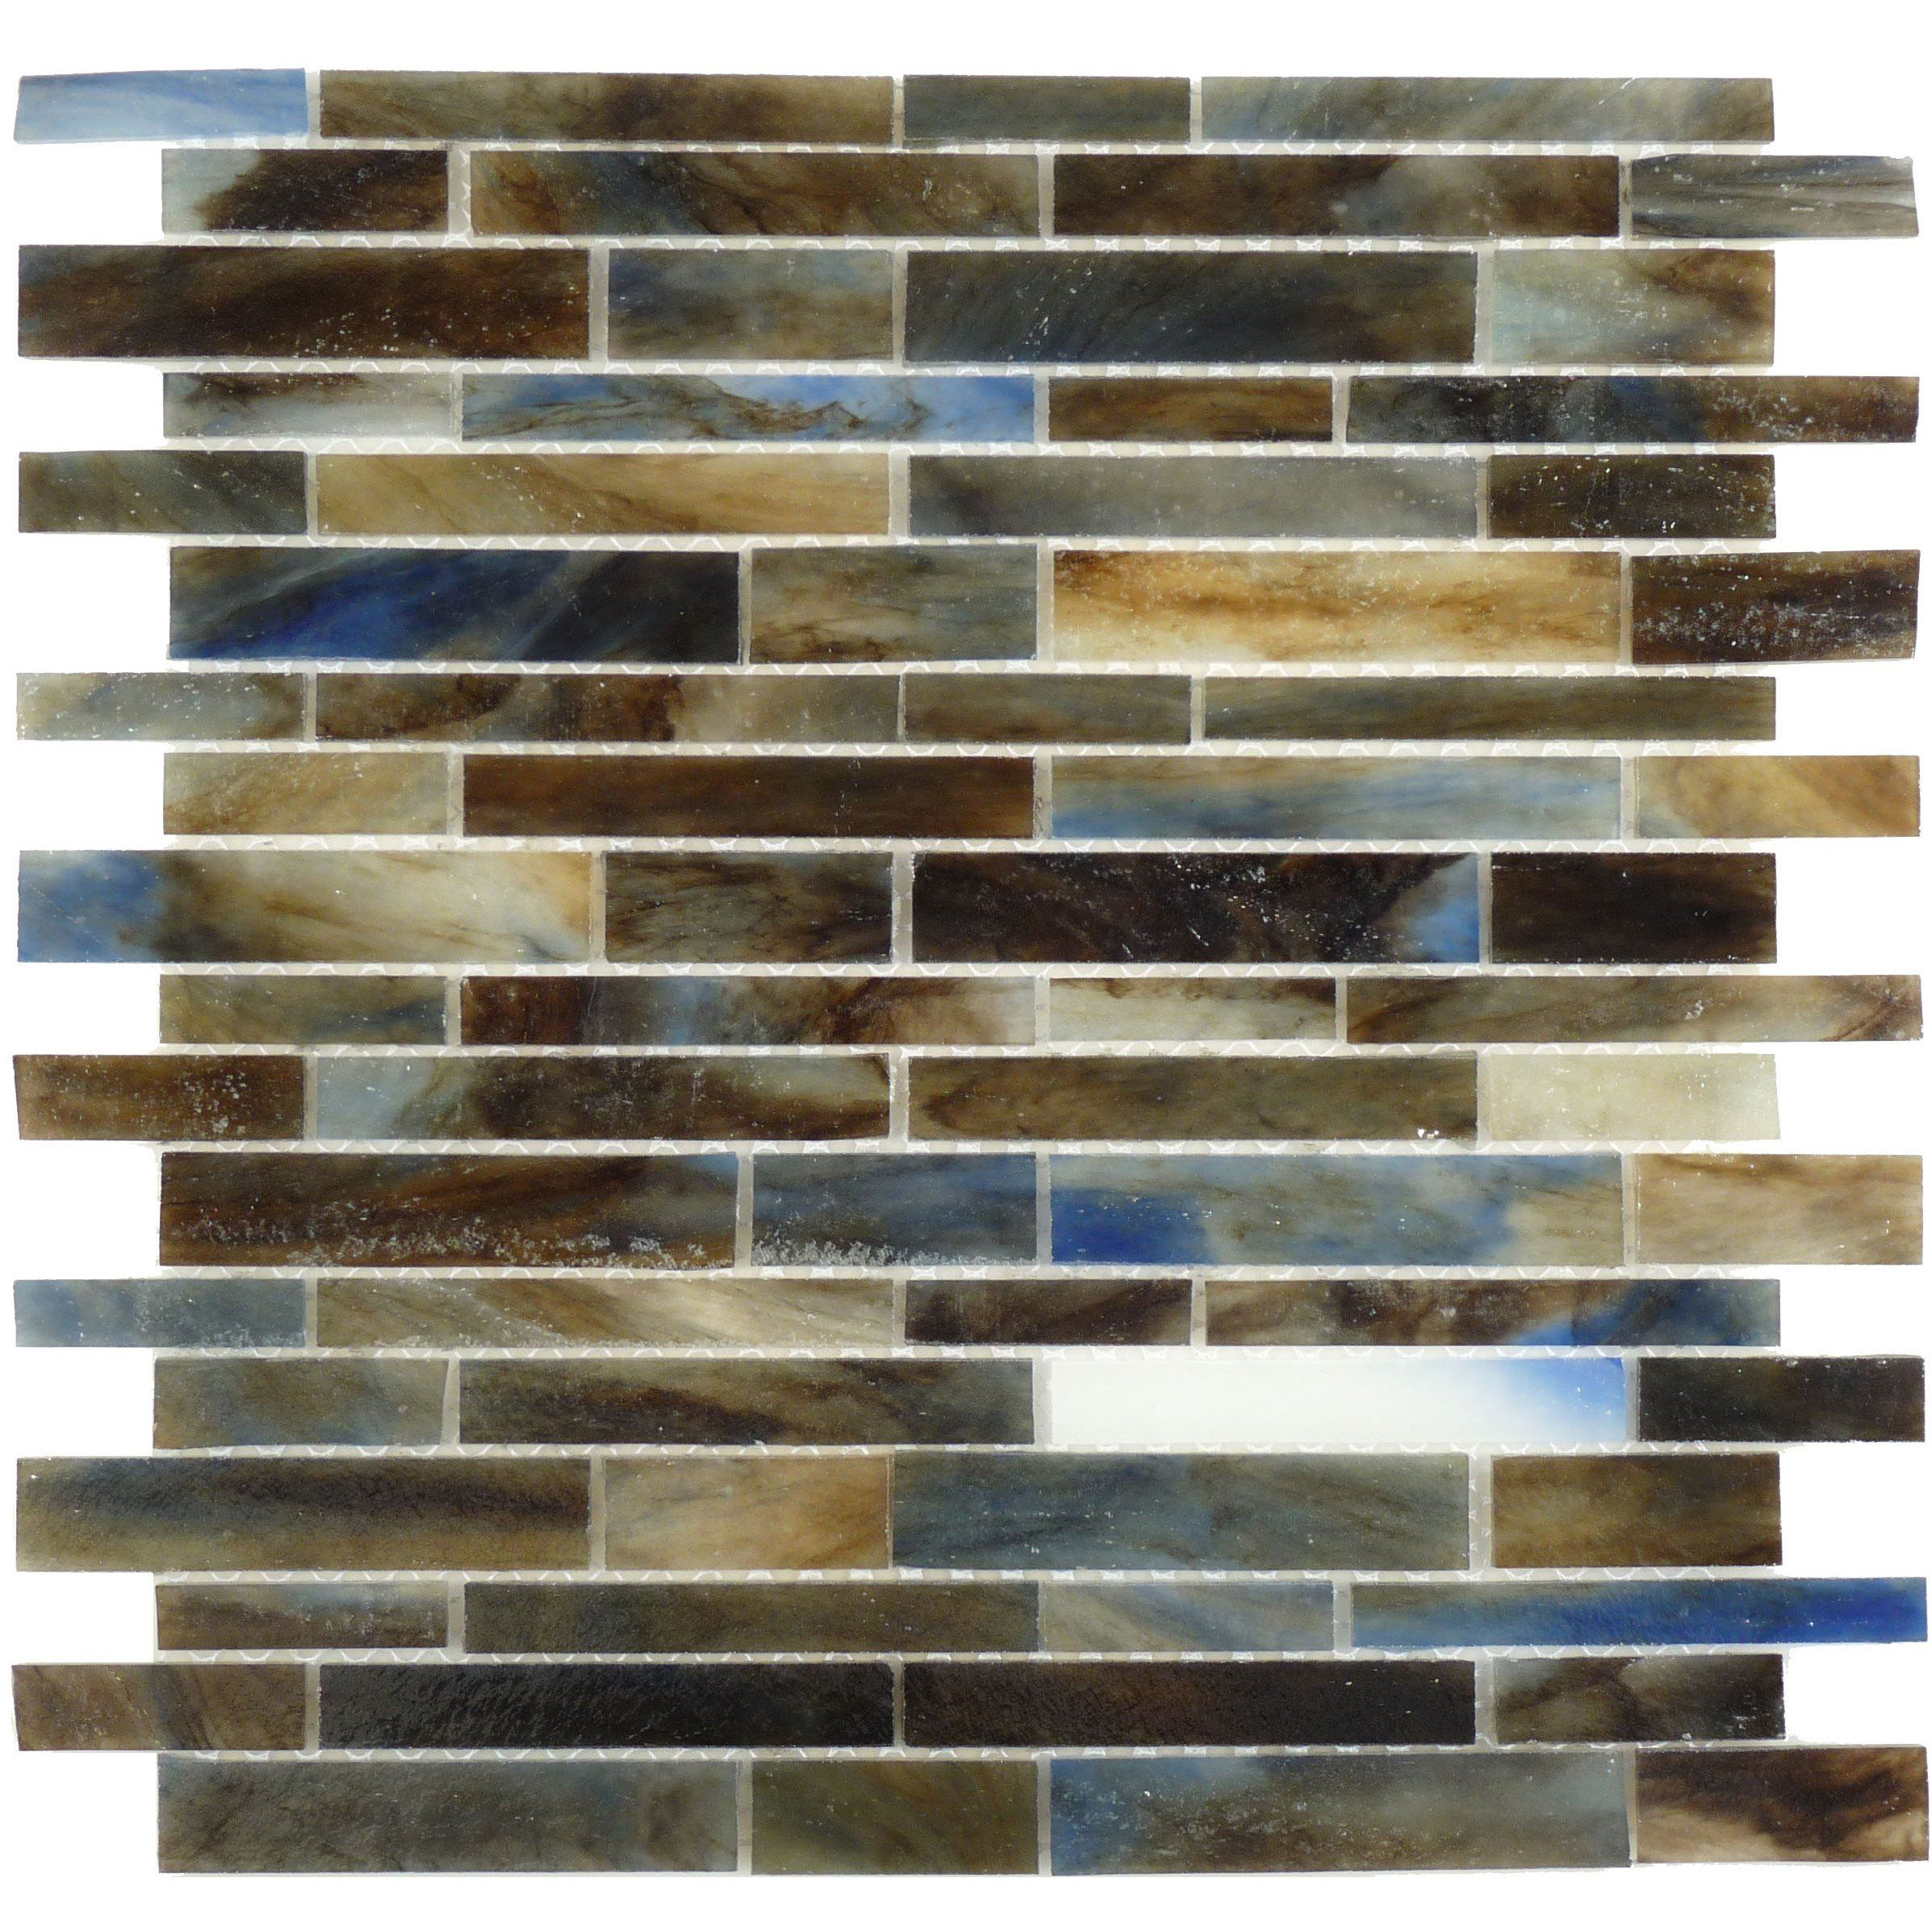 Sheet Size 12 X 12 Tile Size Random Bricks Tiles Per Sheet 72 Tile Thickness 1 8 Grout With Images Glass Tile Stone Mosaic Tile Glass Mosaic Tiles